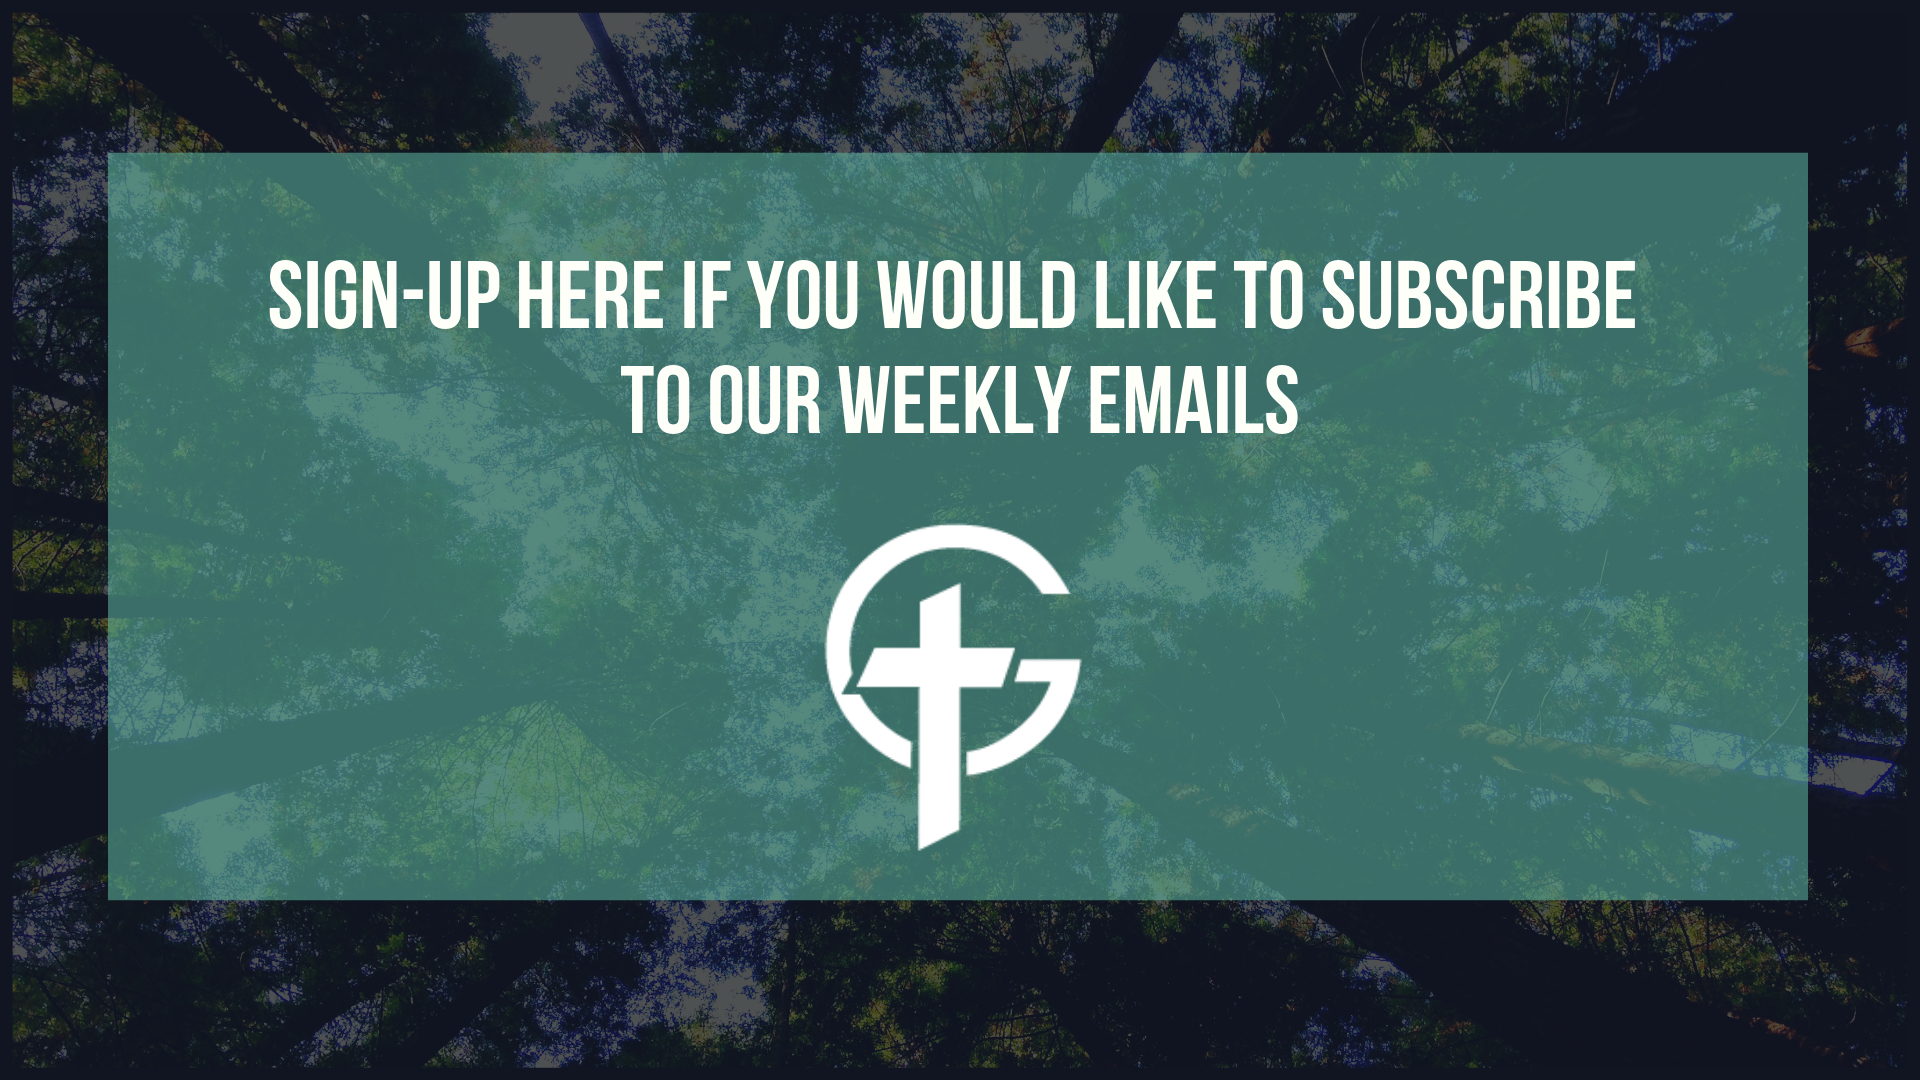 Send us an email if y ou would like to subscribe to our 'Happenings @ Grace'-3